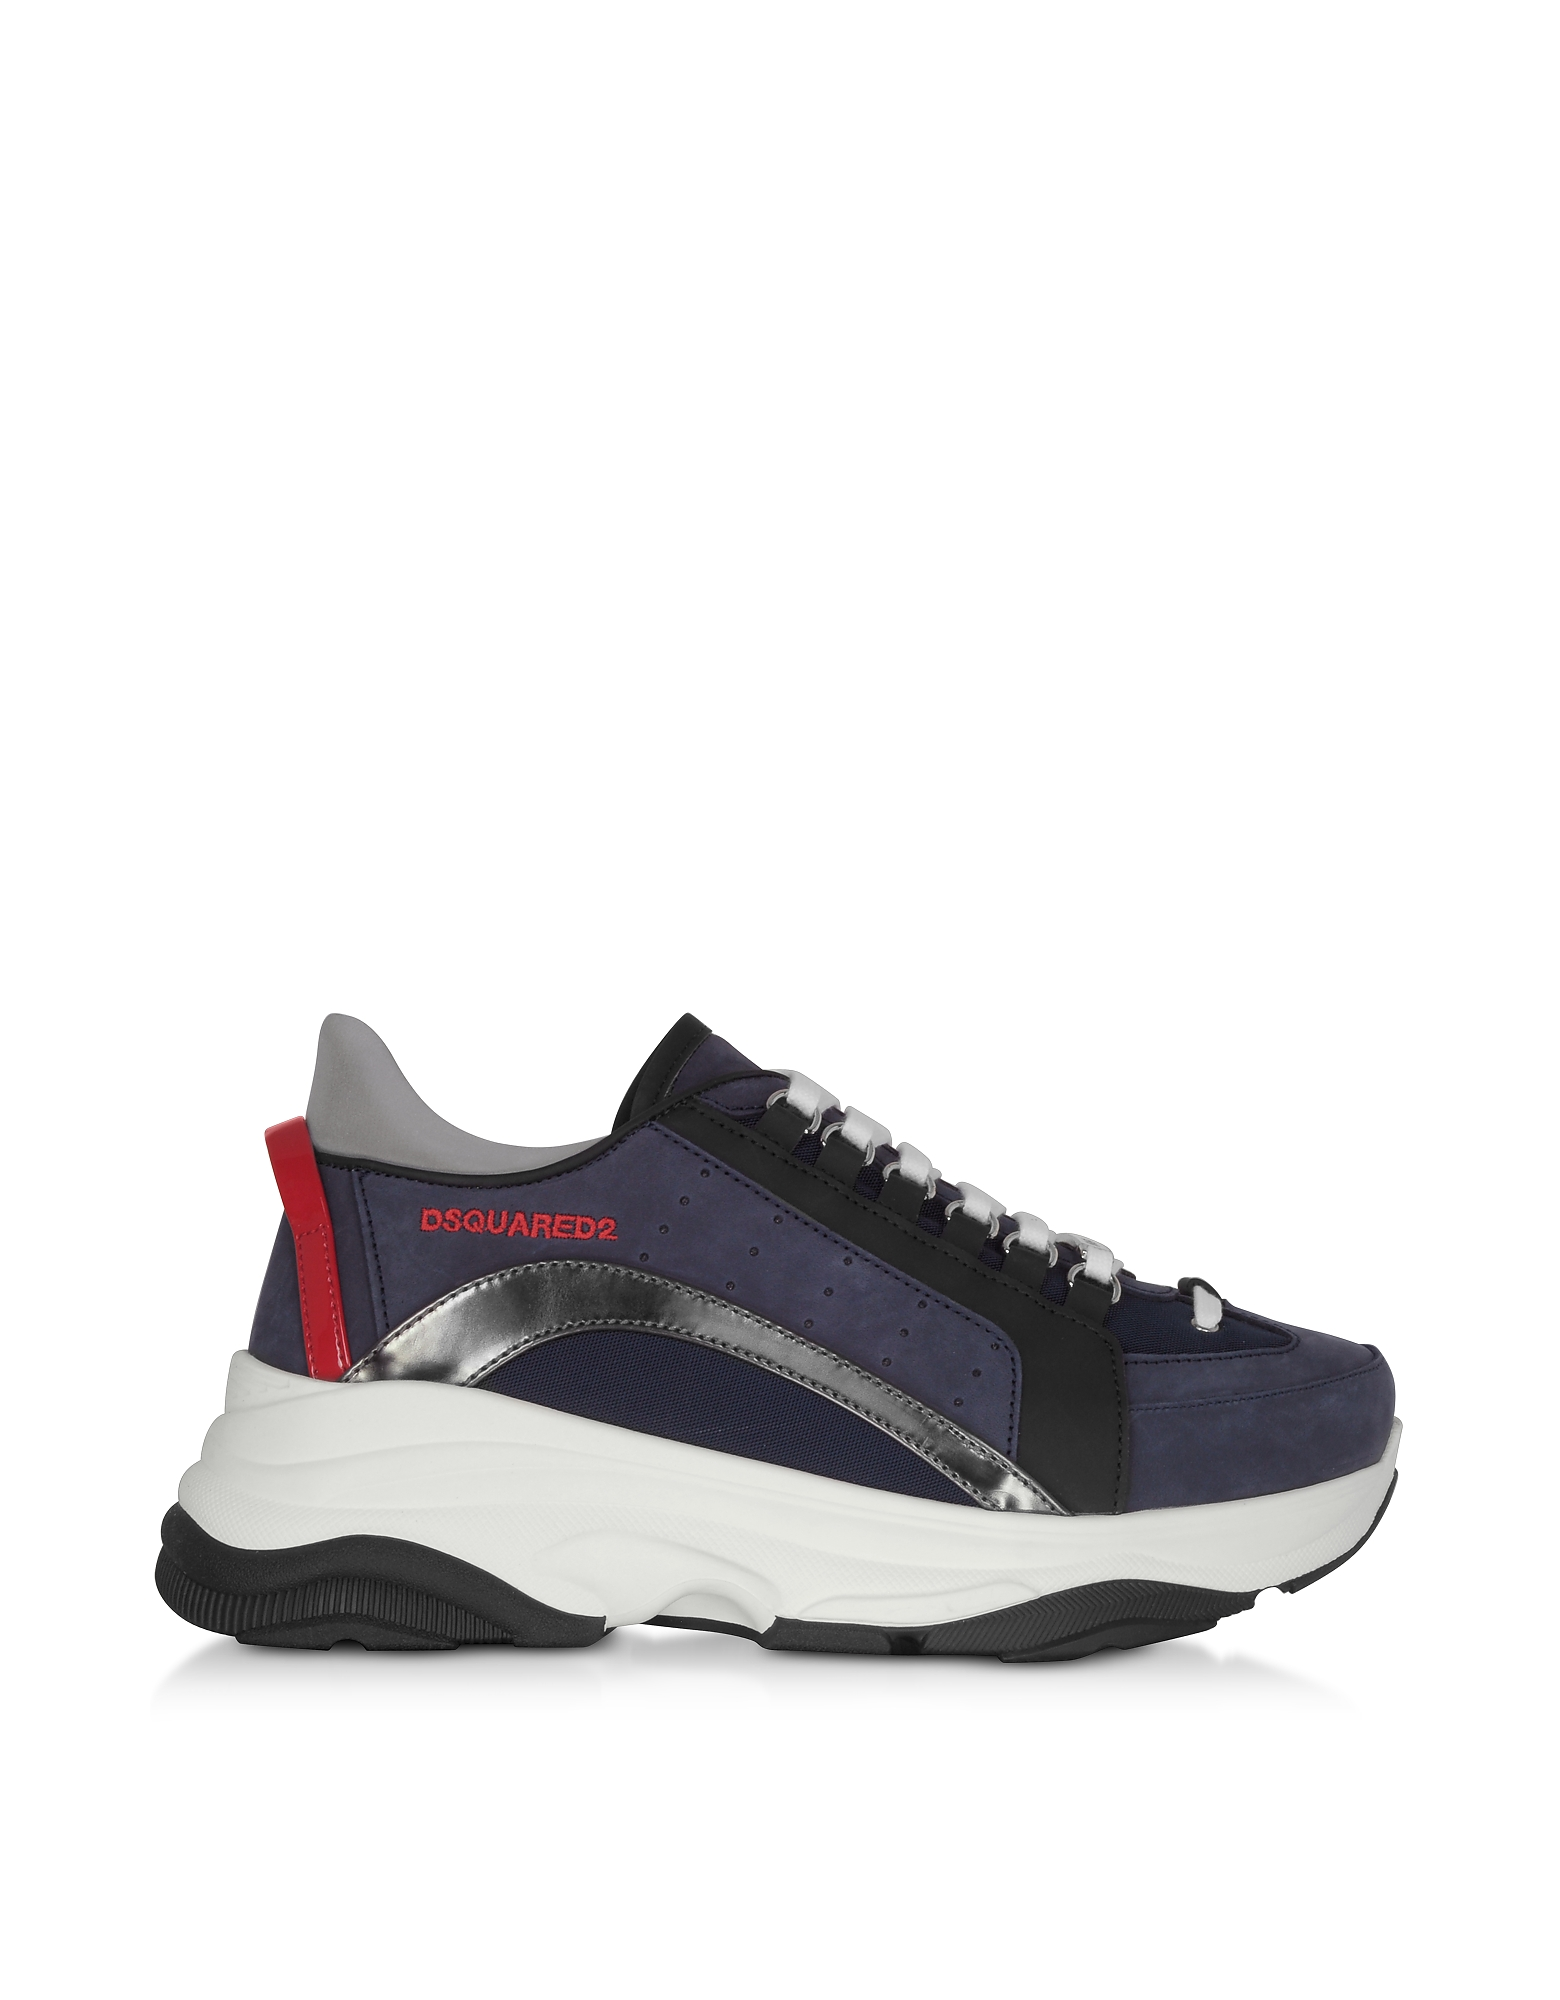 Bumpy 551 Men's Sneakers